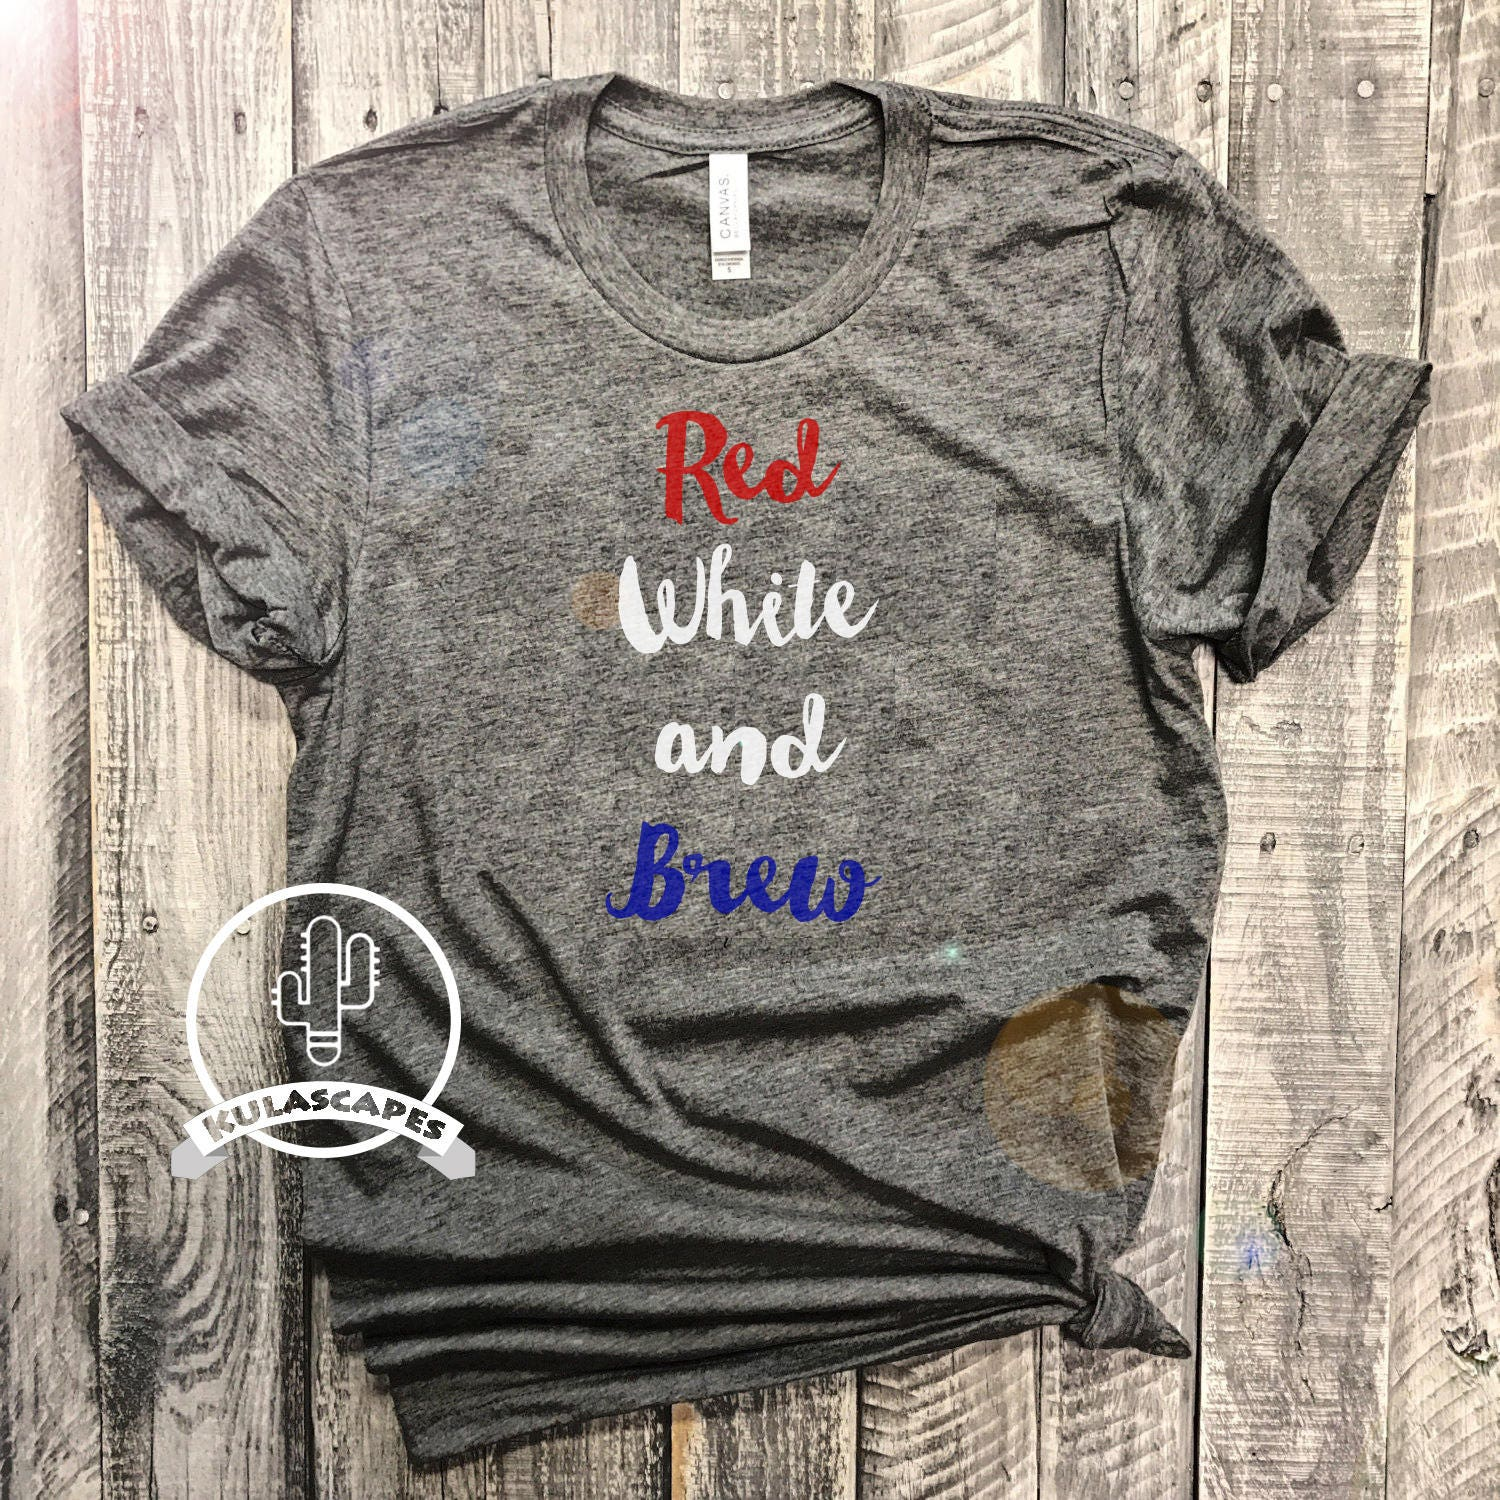 Red White and Brew Unisex Shirt 4th of July Shirt 4th of ... - photo#23